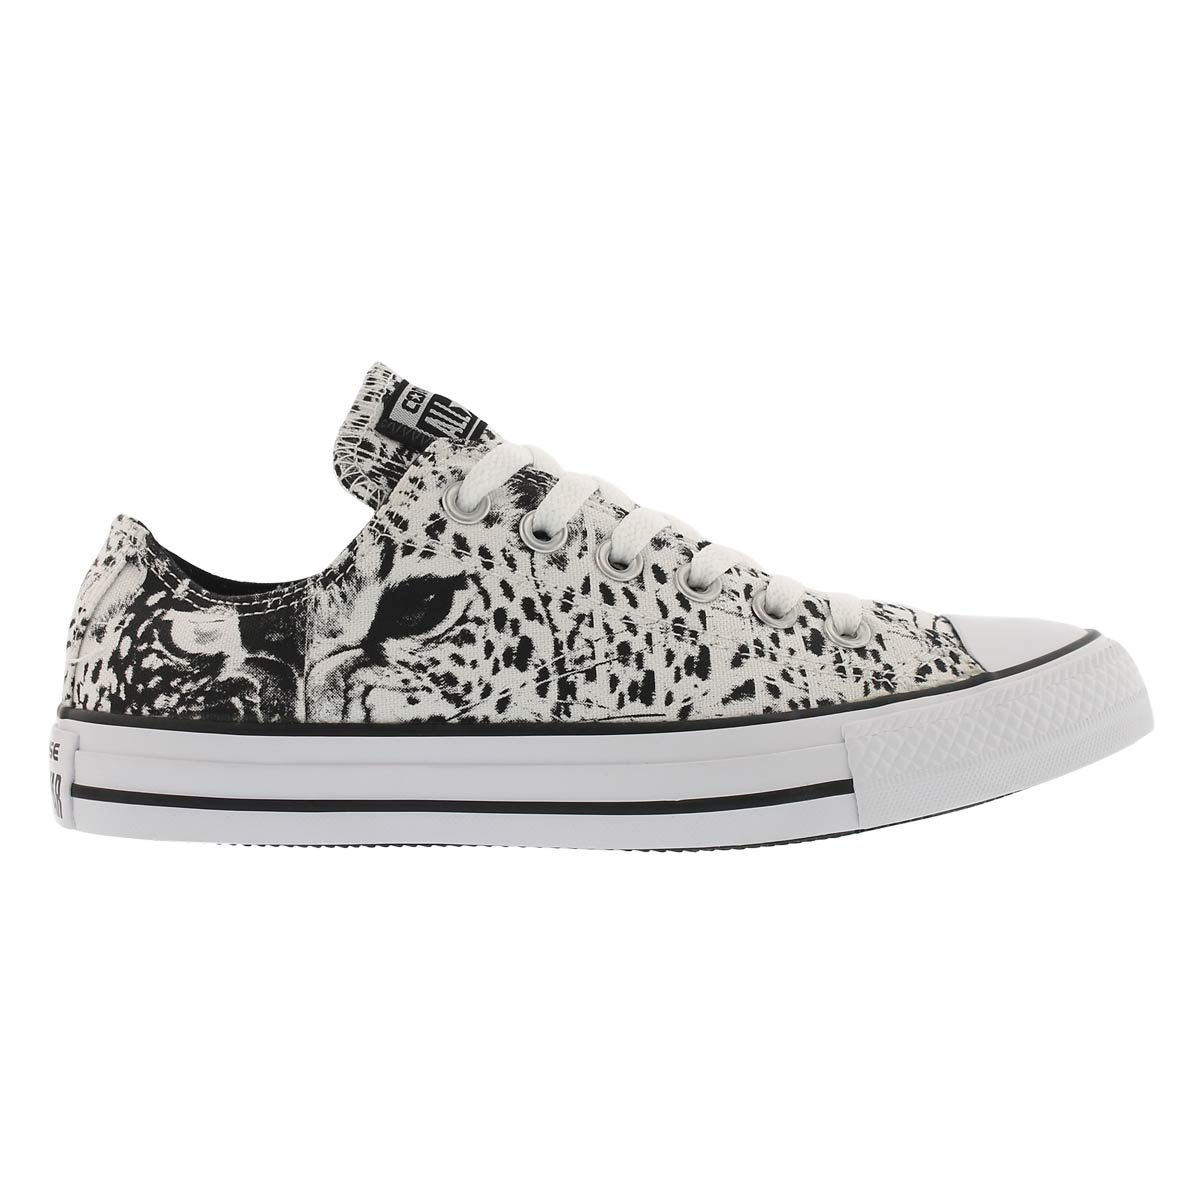 Espadr CT A/S Animal Print, blc/nr, fem